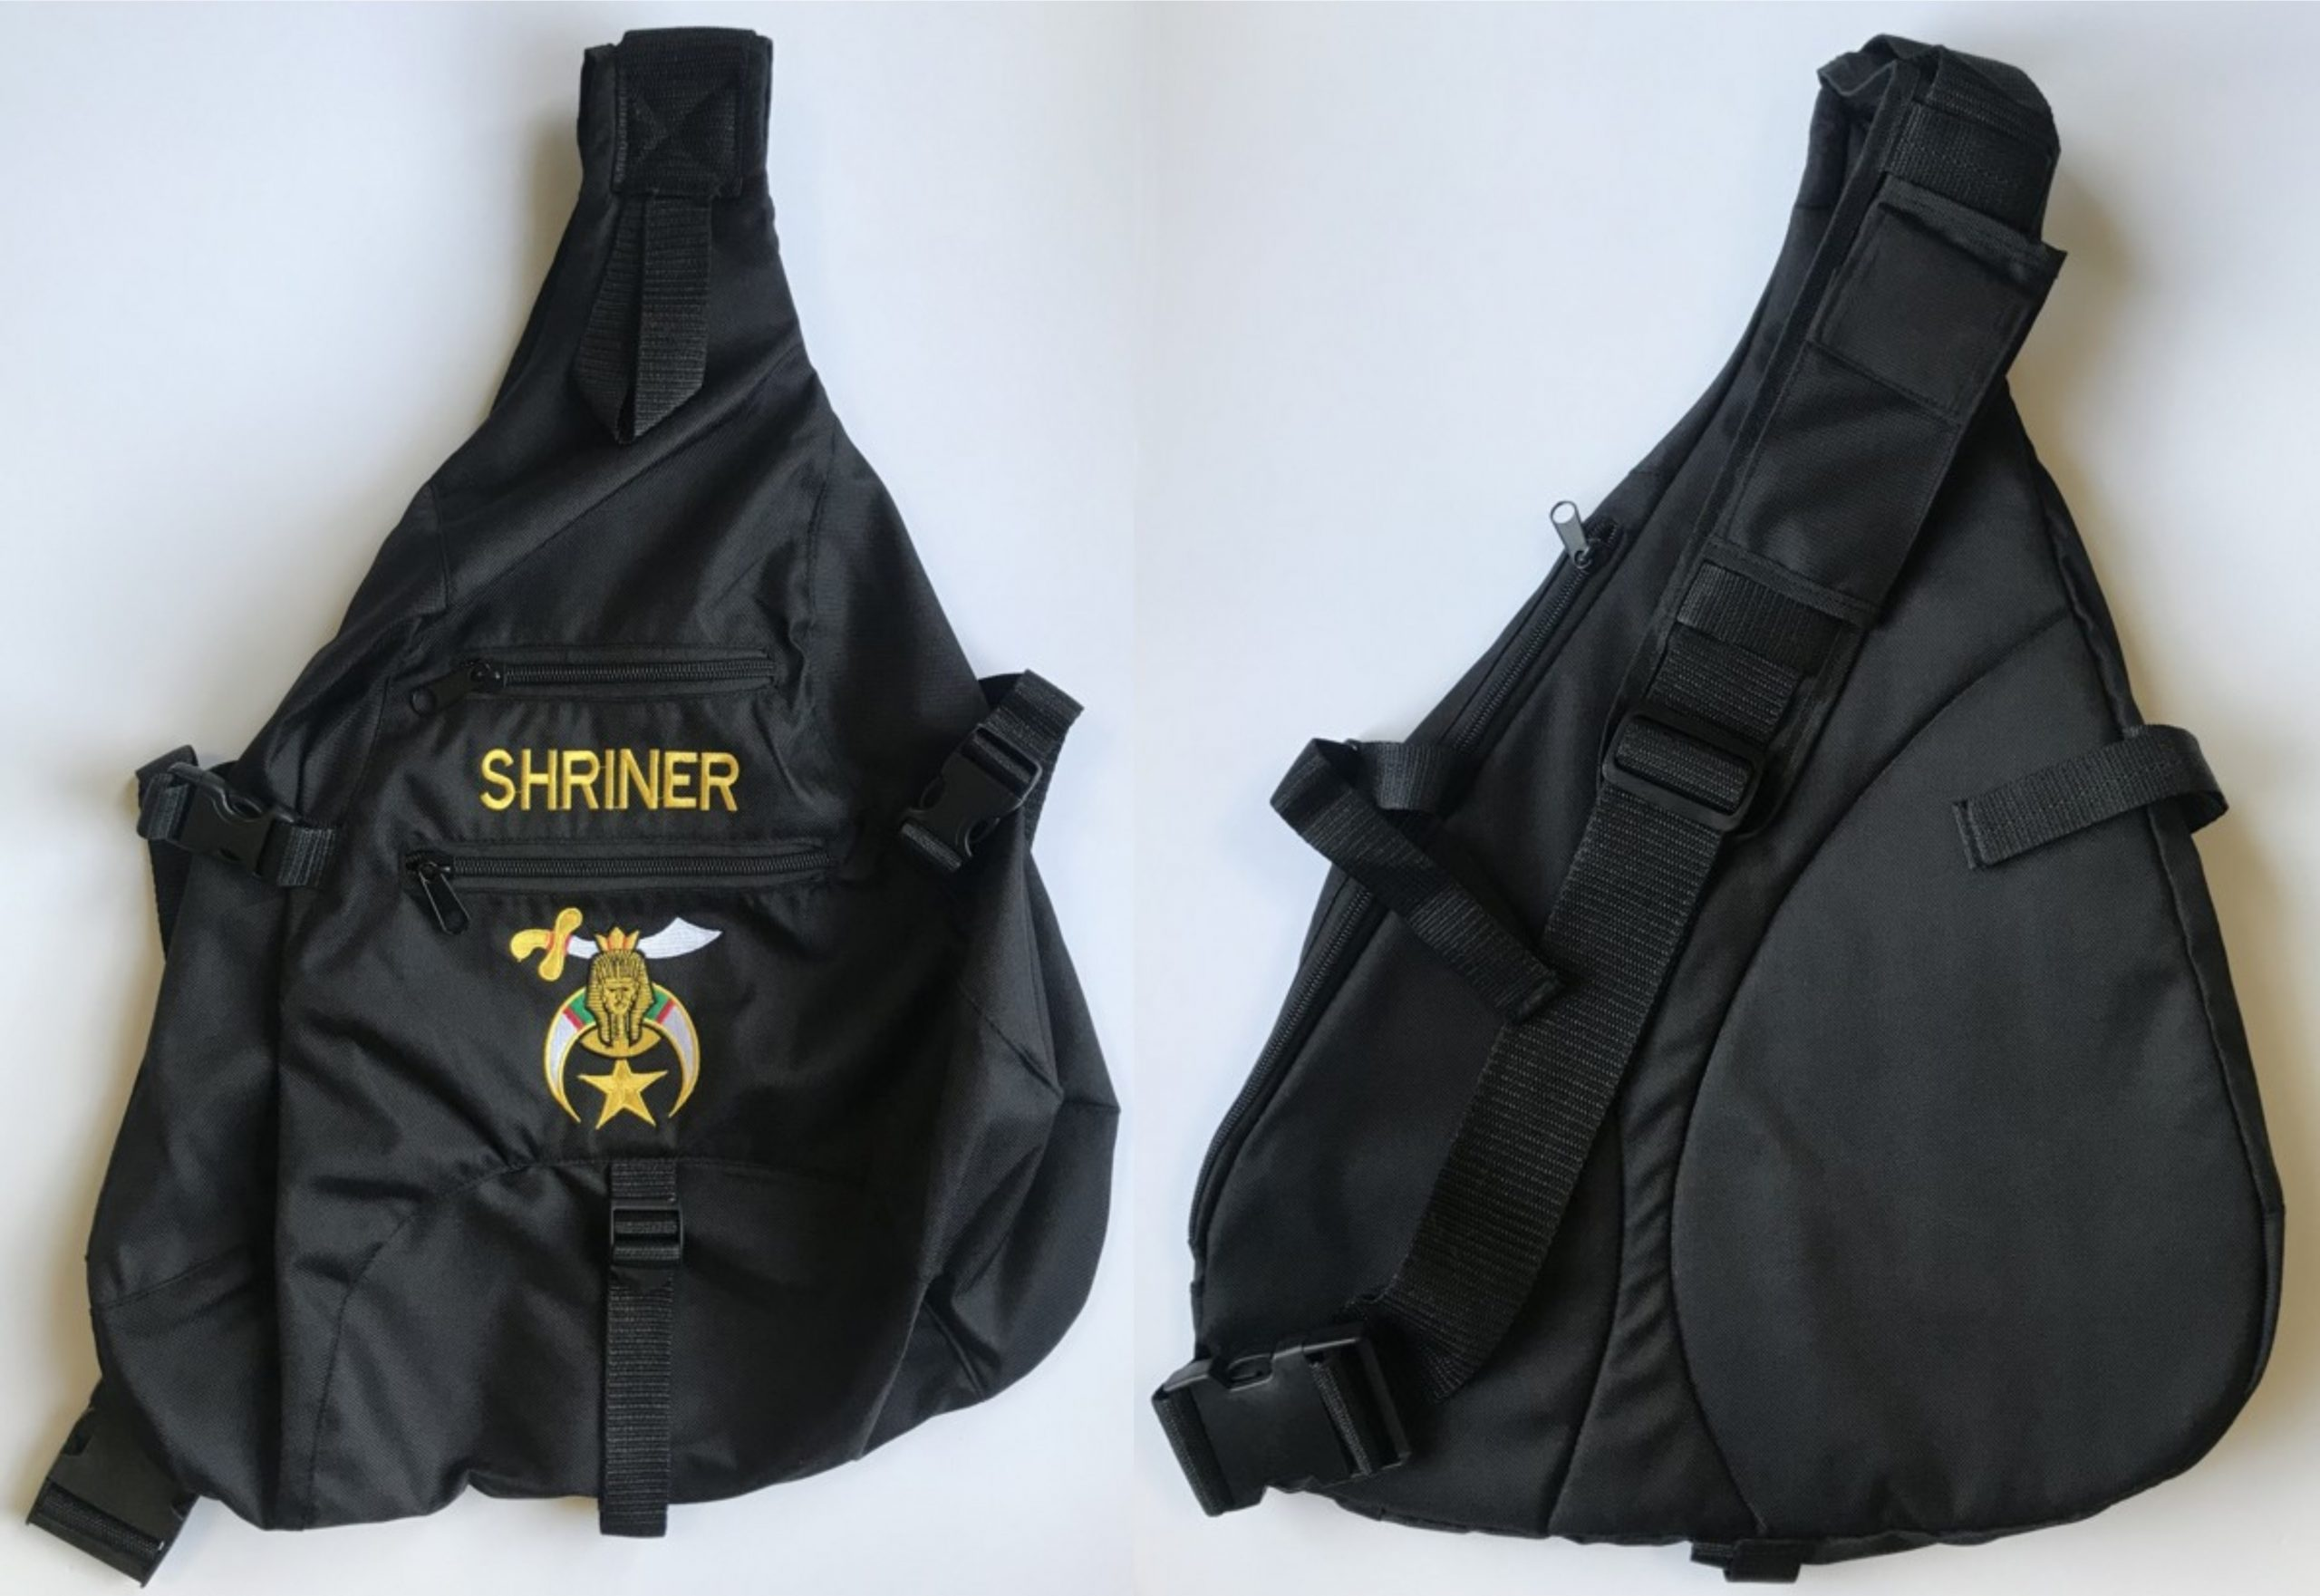 Shriner Shoulder Sling Backpack